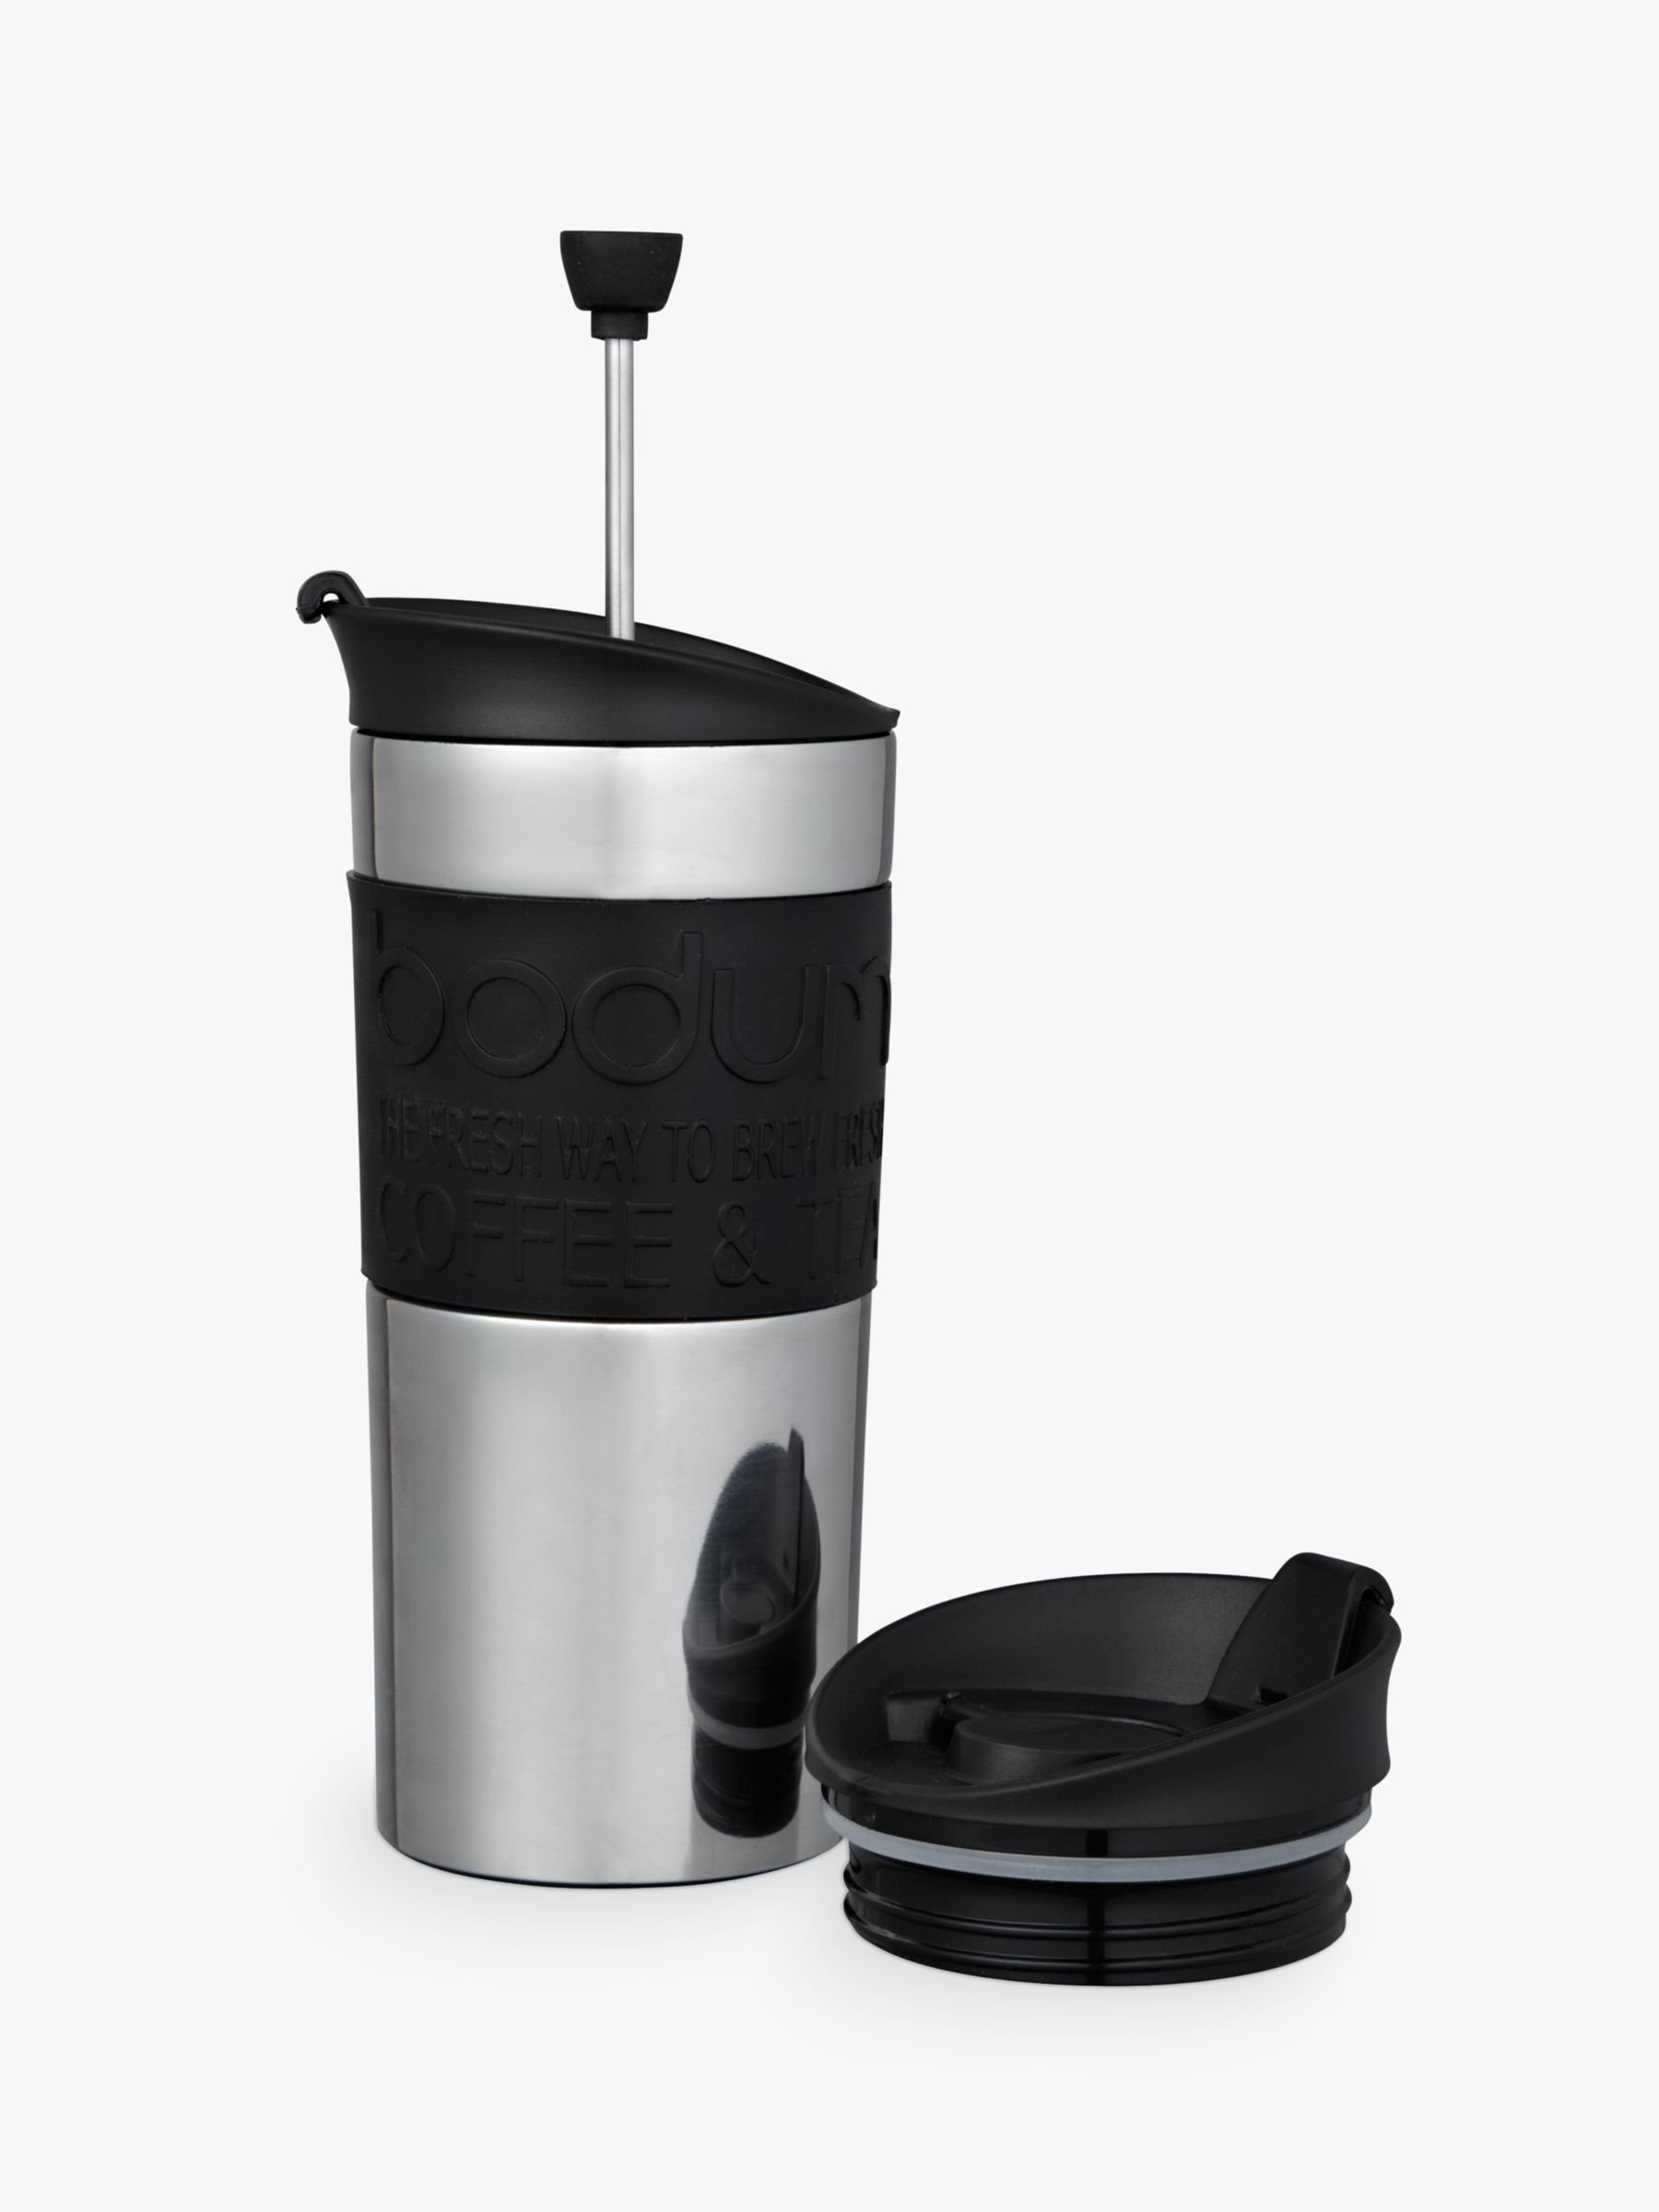 Travel Coffee Maker Press : Bodum Travel Press Coffee Maker Set, Black from Bodum at ourlittlehome.co.uk (748796038)